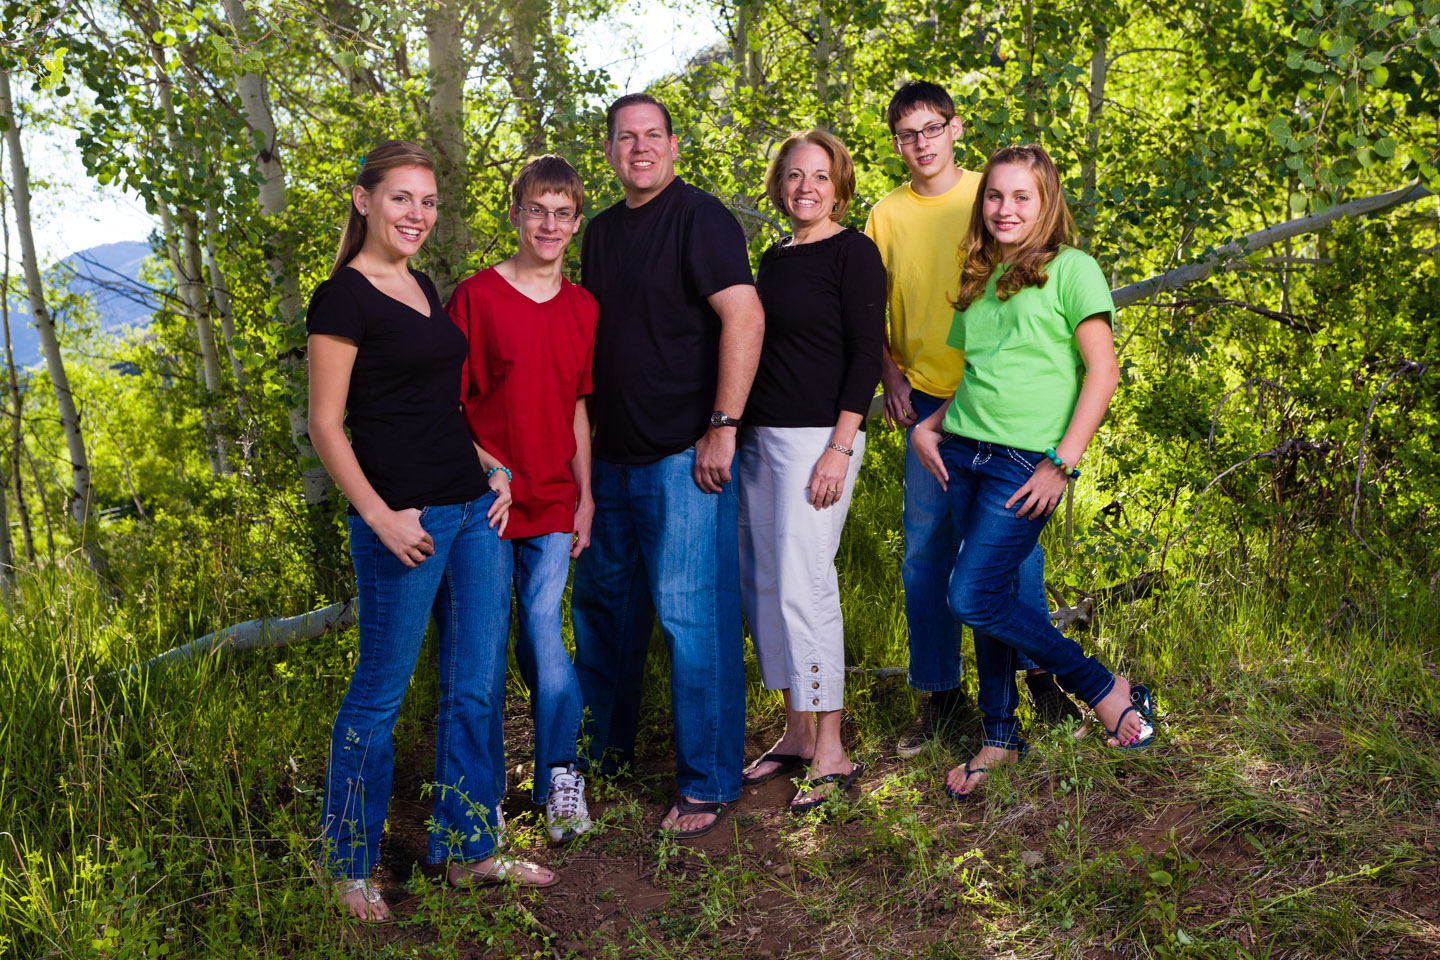 Photograph the individual families